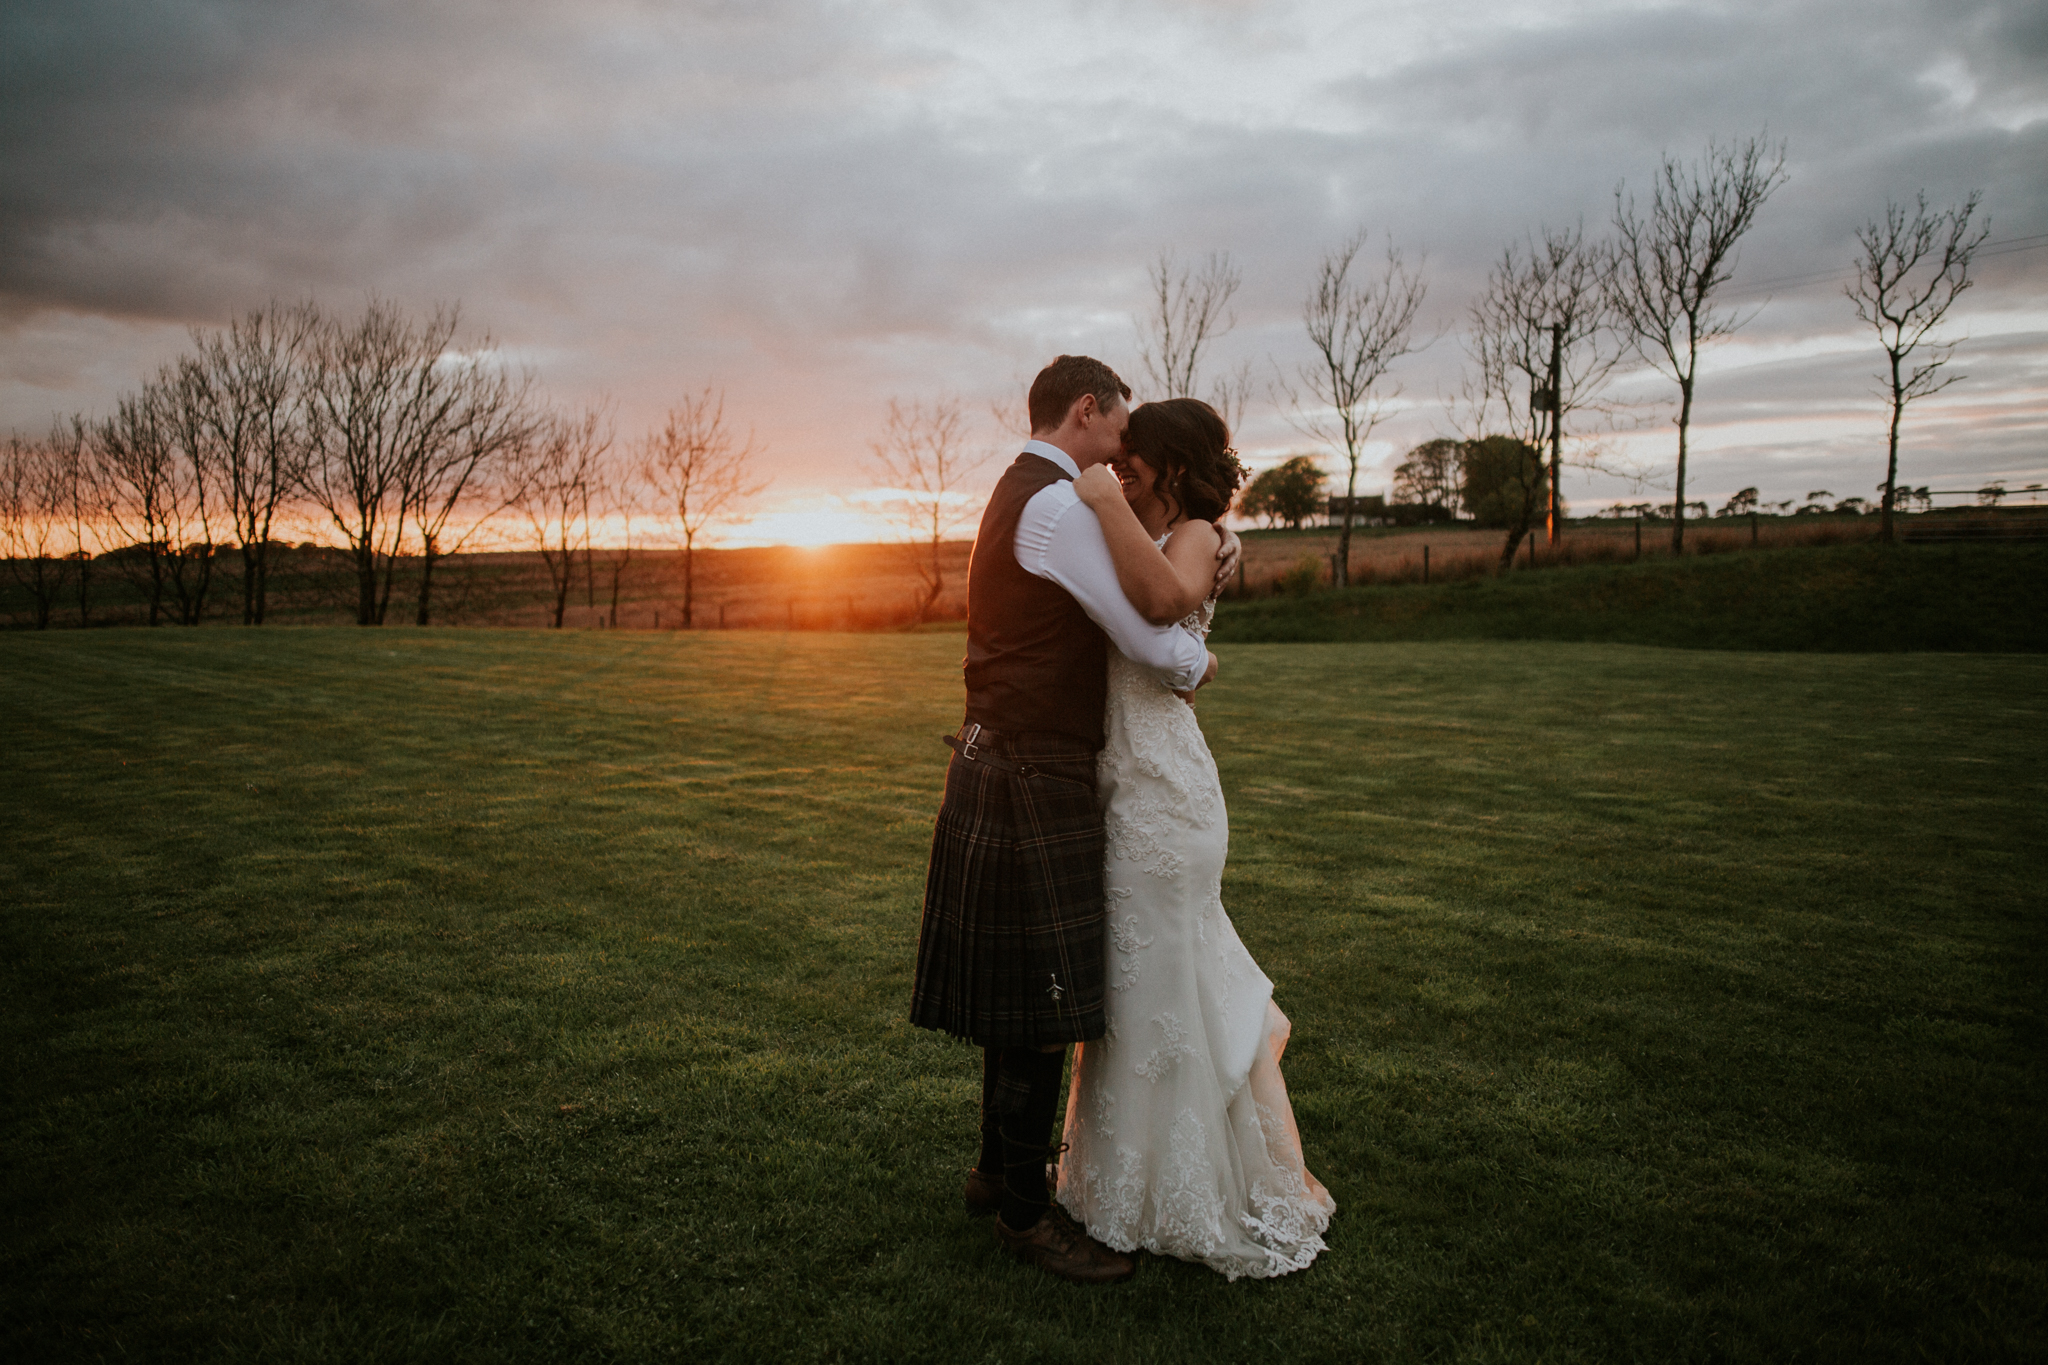 The couple is cuddle during the golden sunset photo shoot at the Harelaw farm